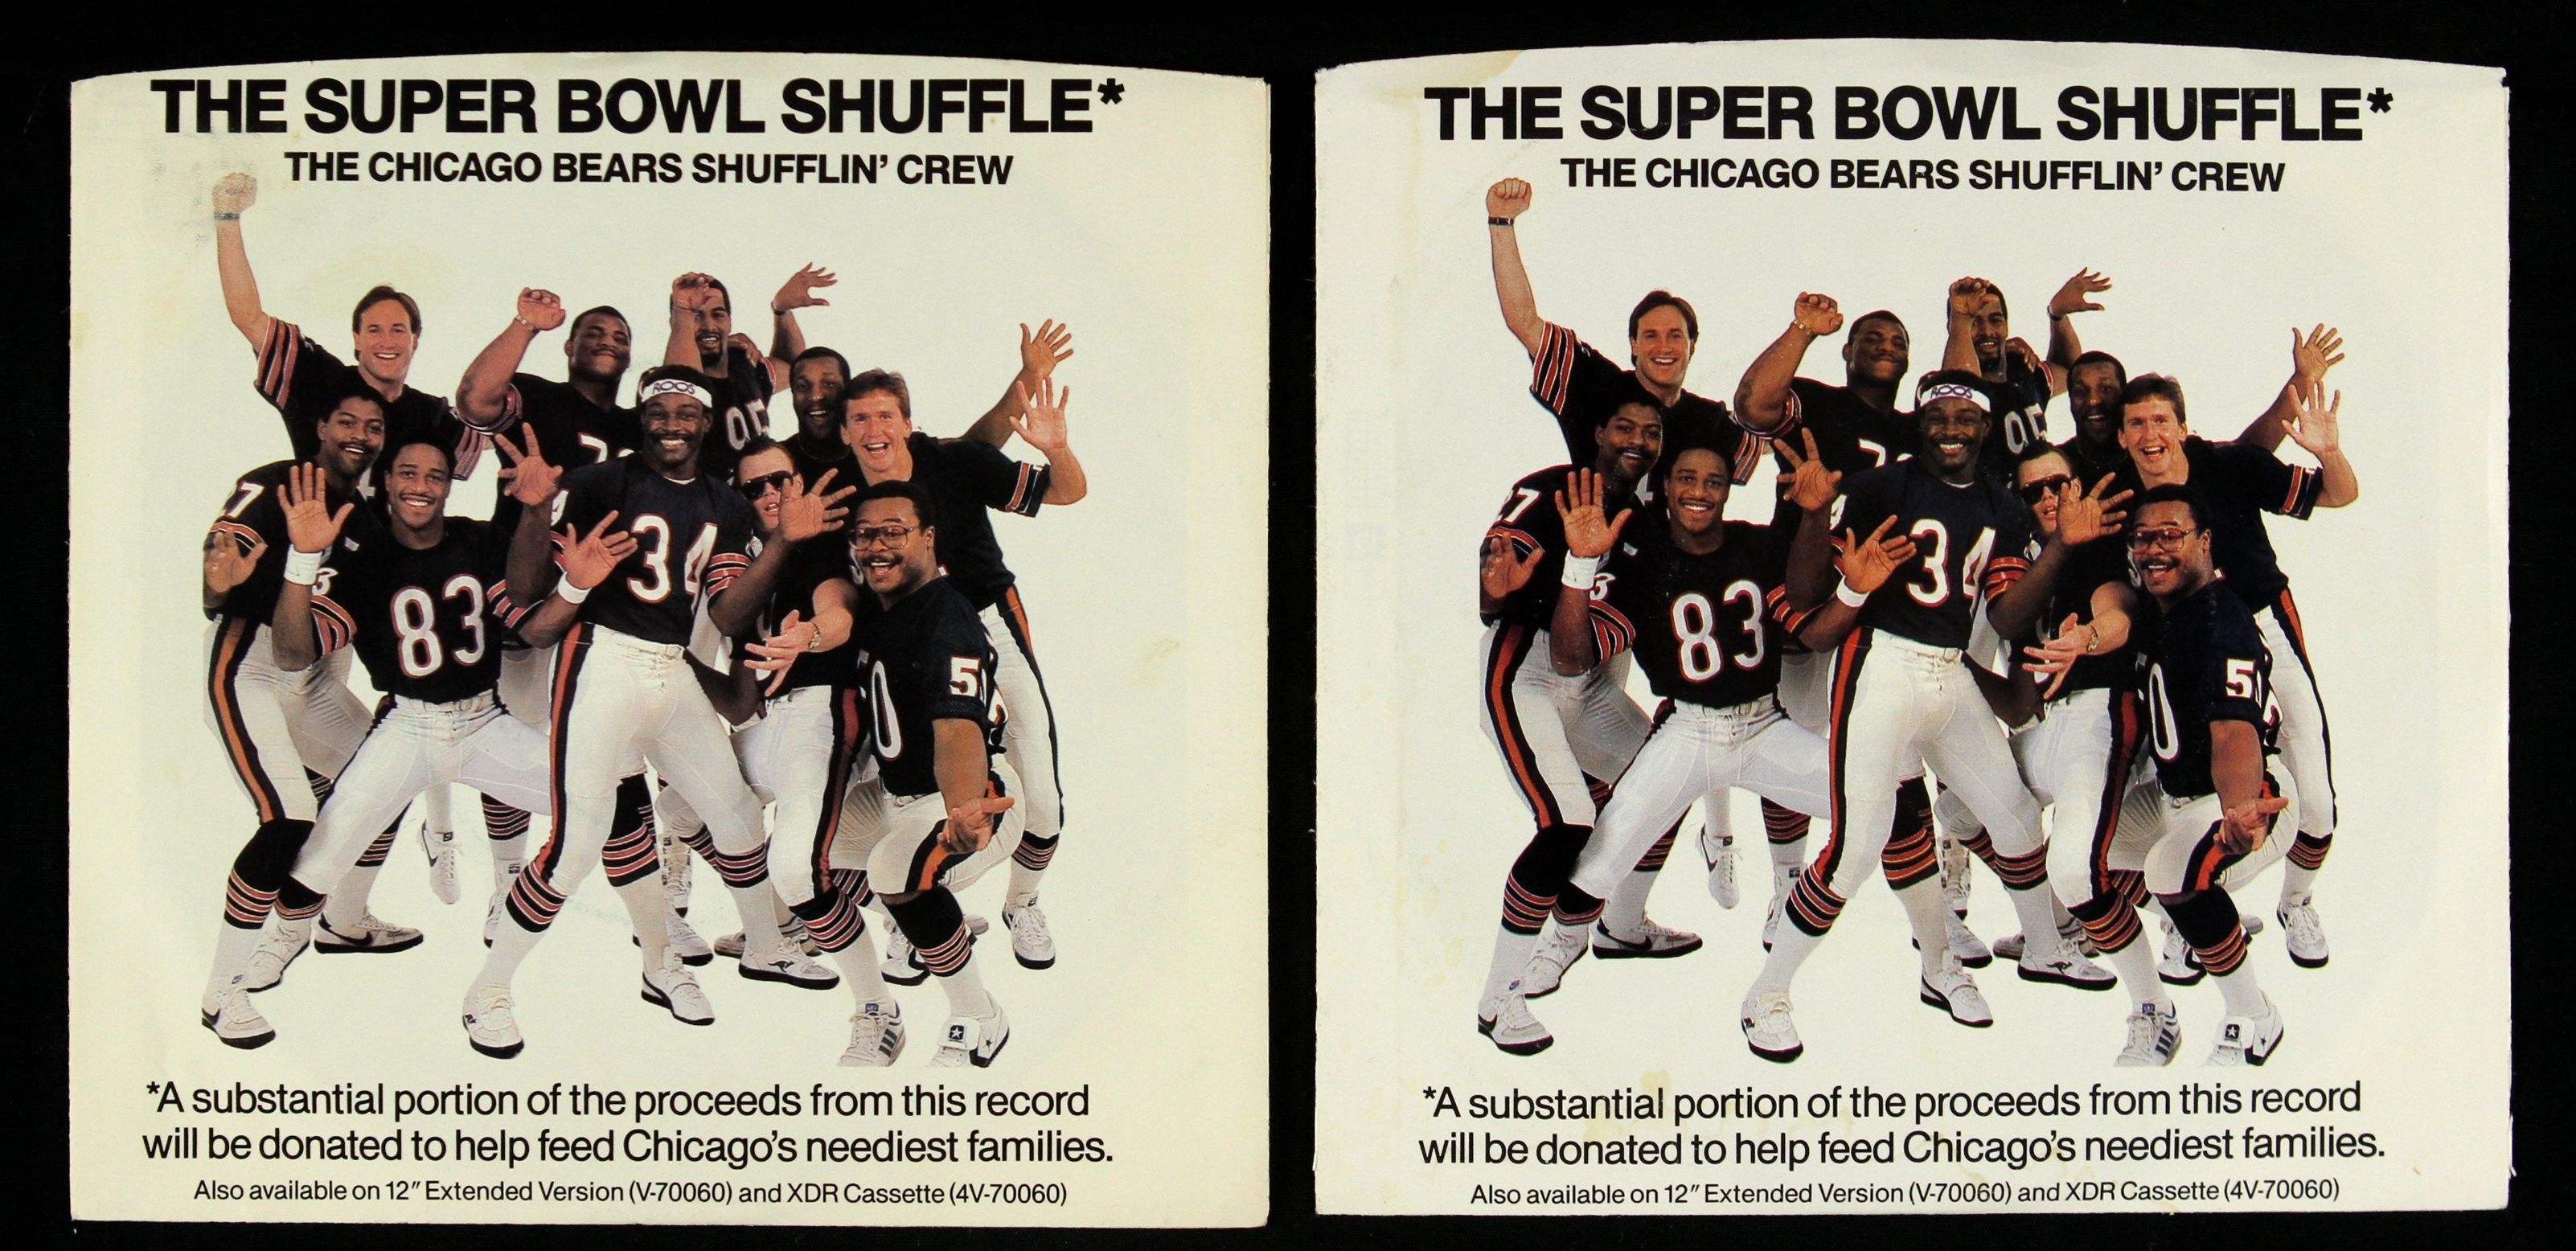 """Lot Detail - 1985 Chicago Bears Super Bowl Shuffle 7"""" 45 Rpm with The Super Bowl Shuffle"""